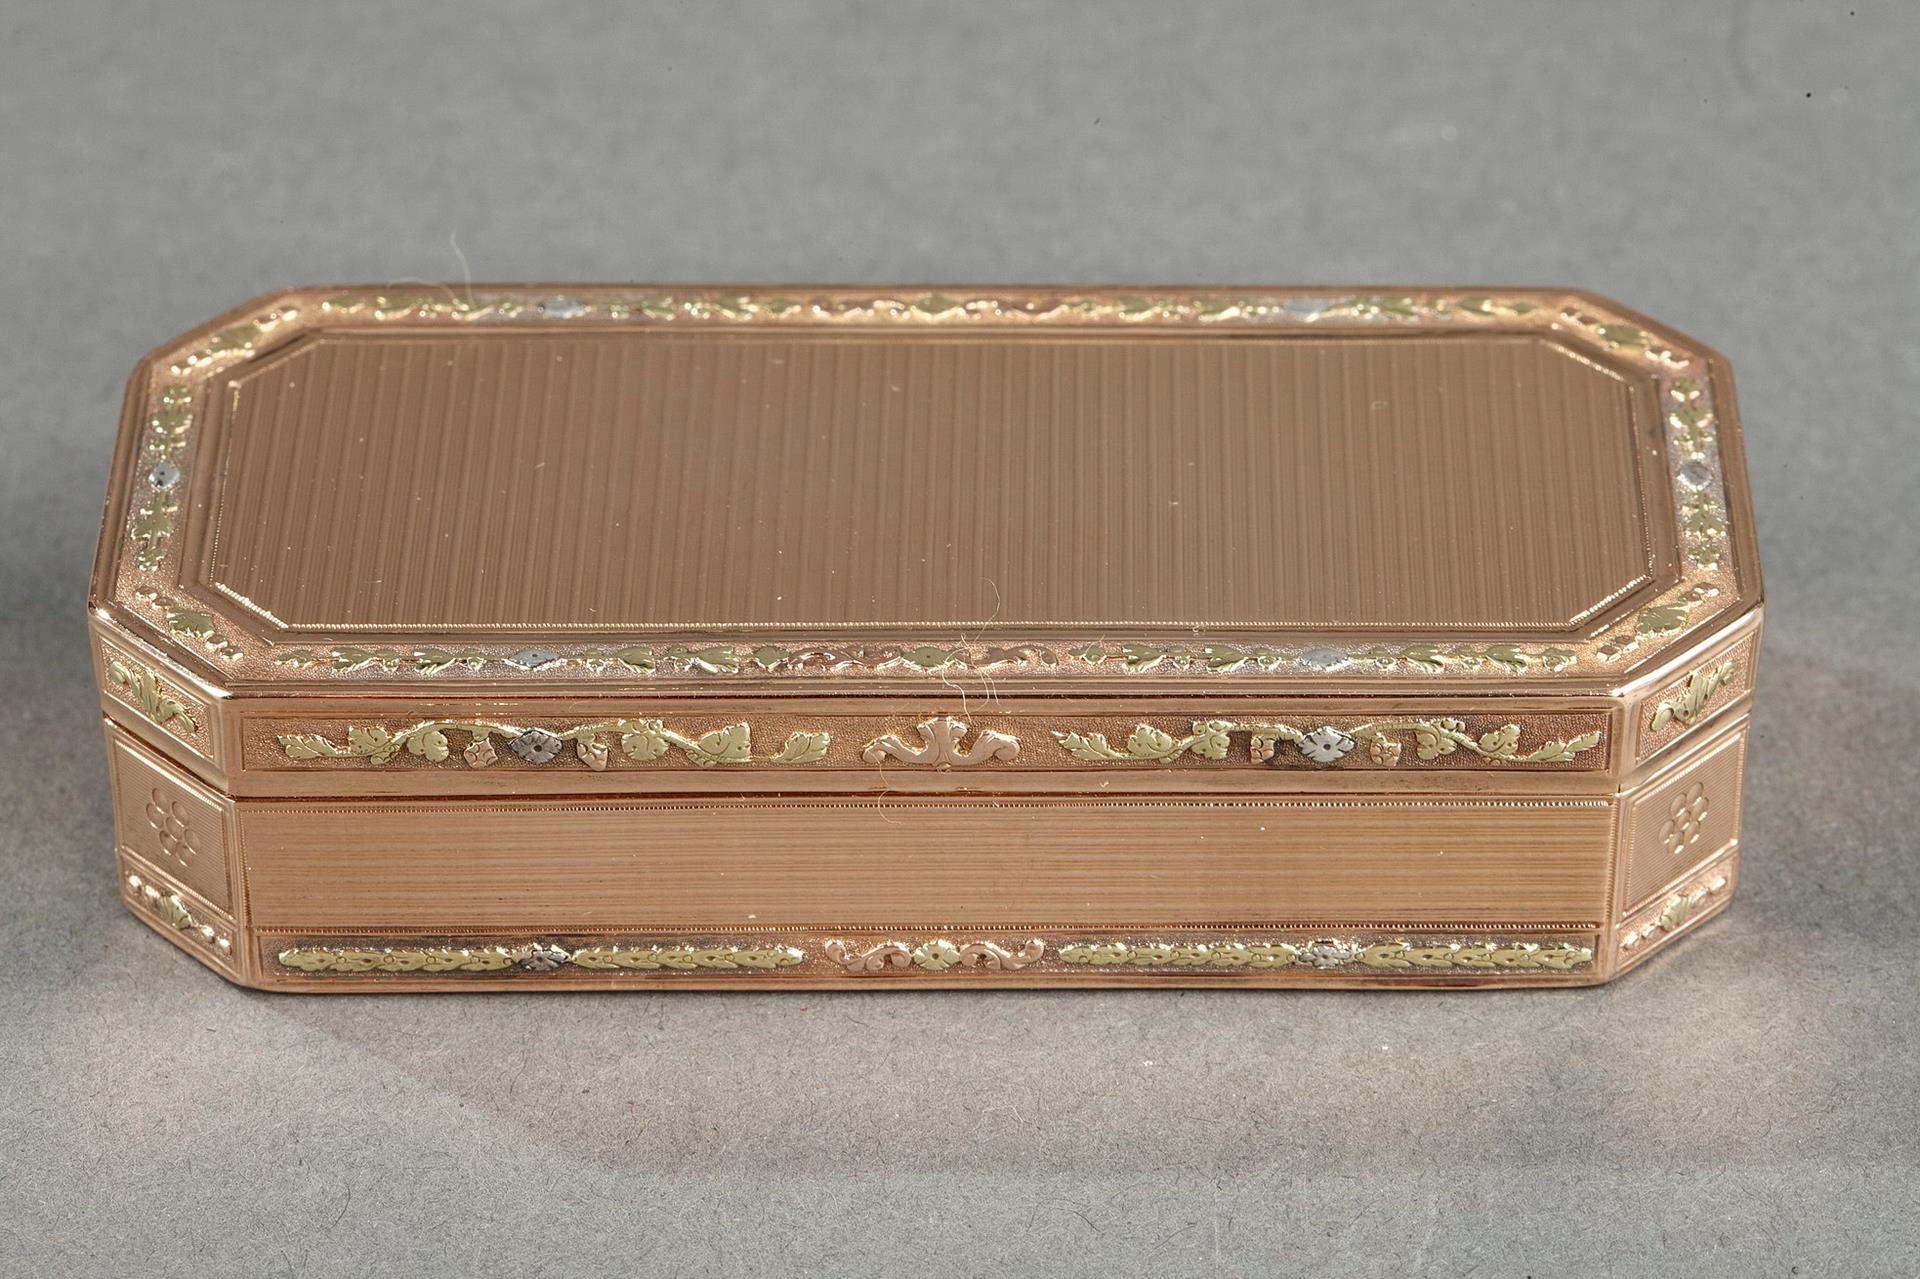 An early 19th century gold box.